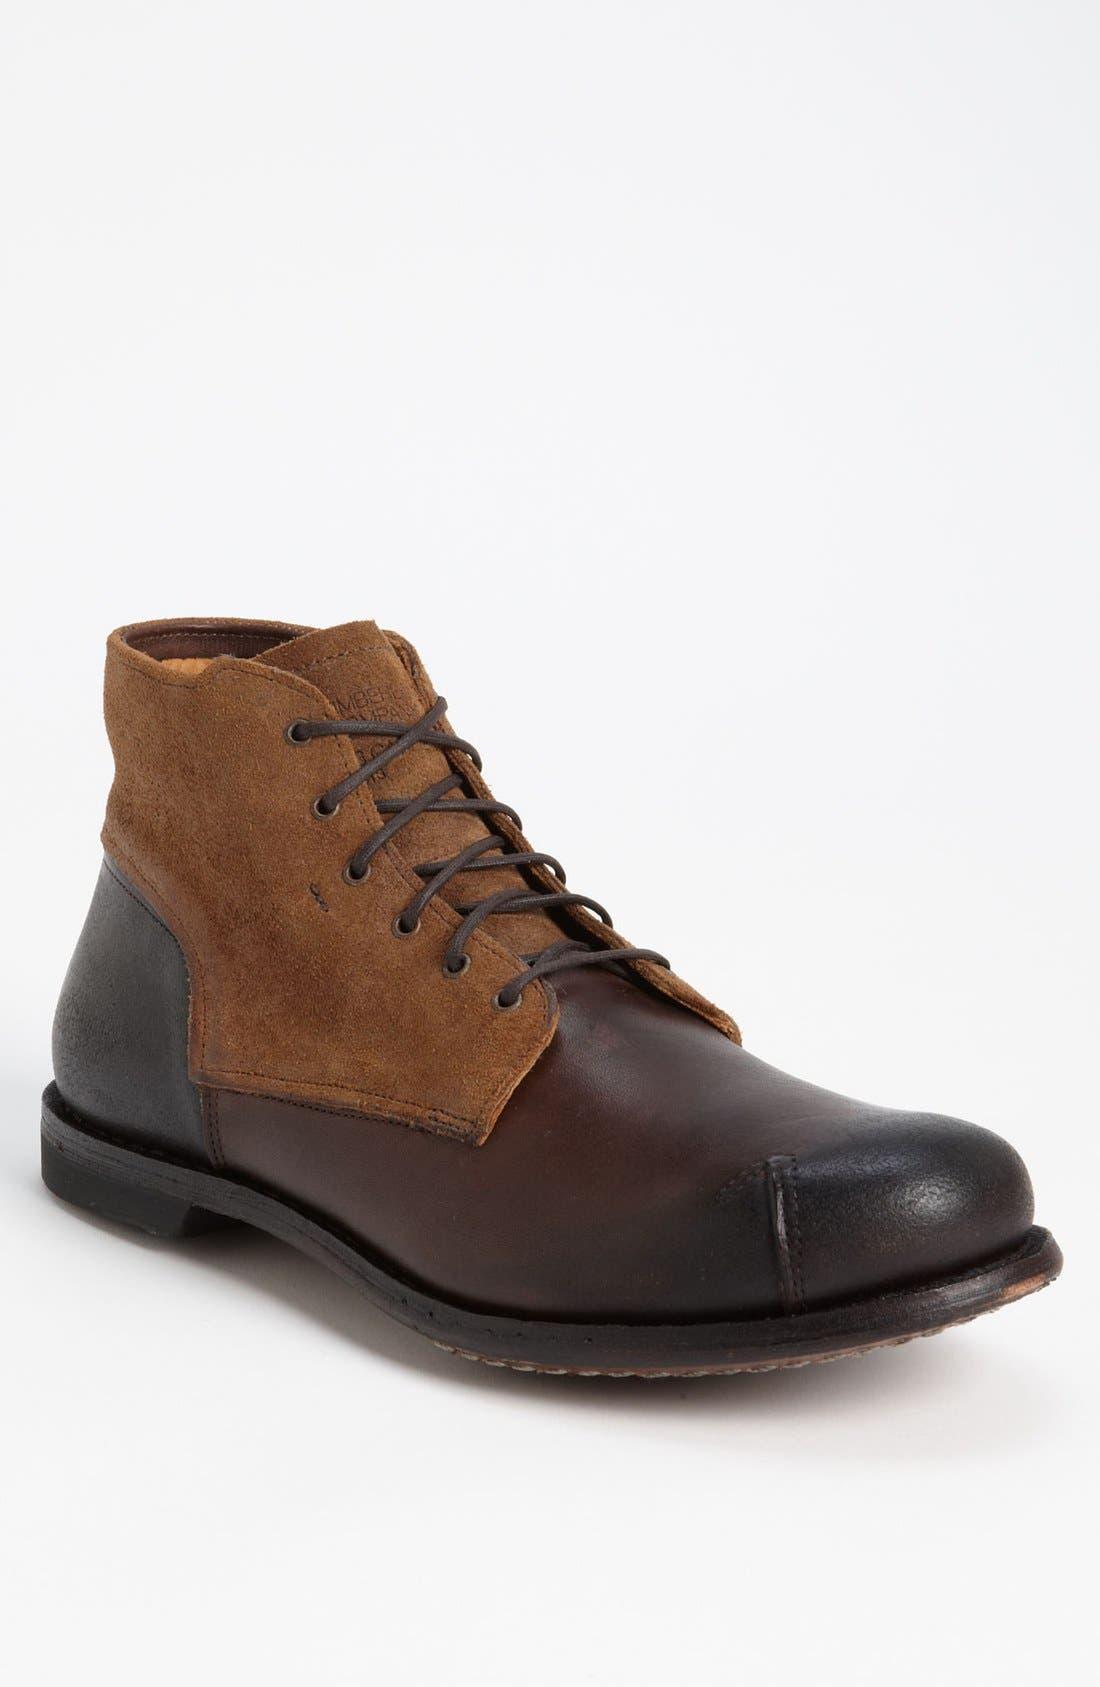 Main Image - TIMBERLAND 13 CARRIES CHUKKA BOOT